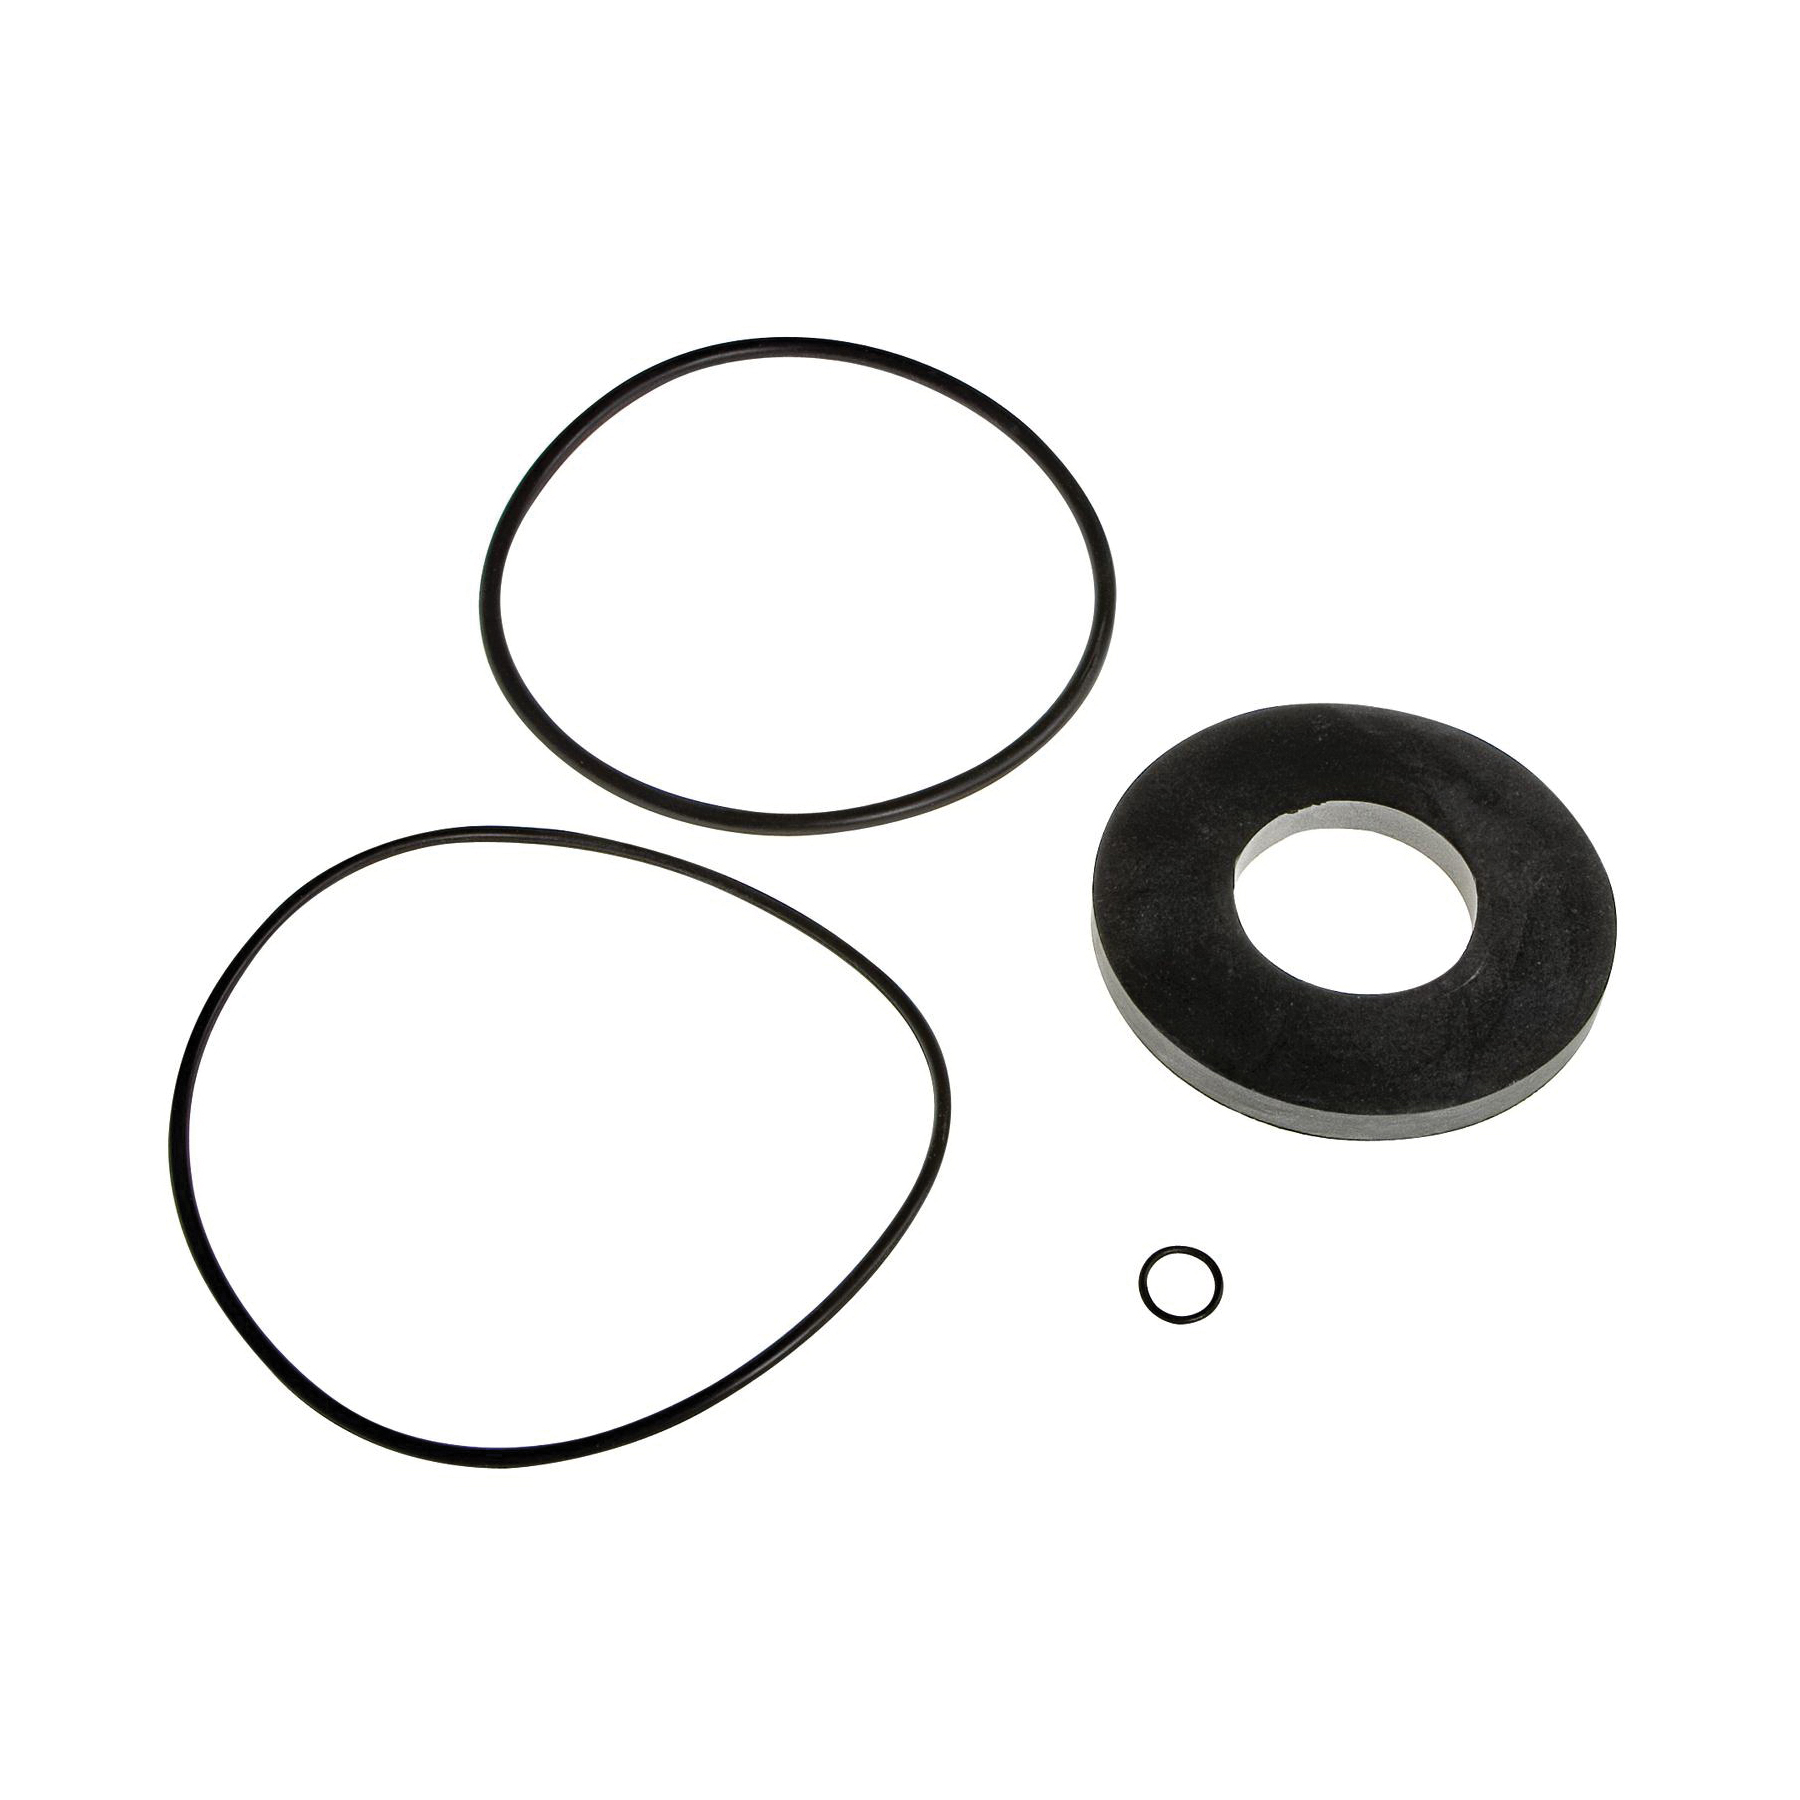 Febco® 905061 Check Rubber Part Kit, For Use With 805YD/806YD 3 in Backflow Double Check Valve Assembly and 825YD/826YD Reduced Pressure Zone Assembly or Reduced Pressure Detector Assembly